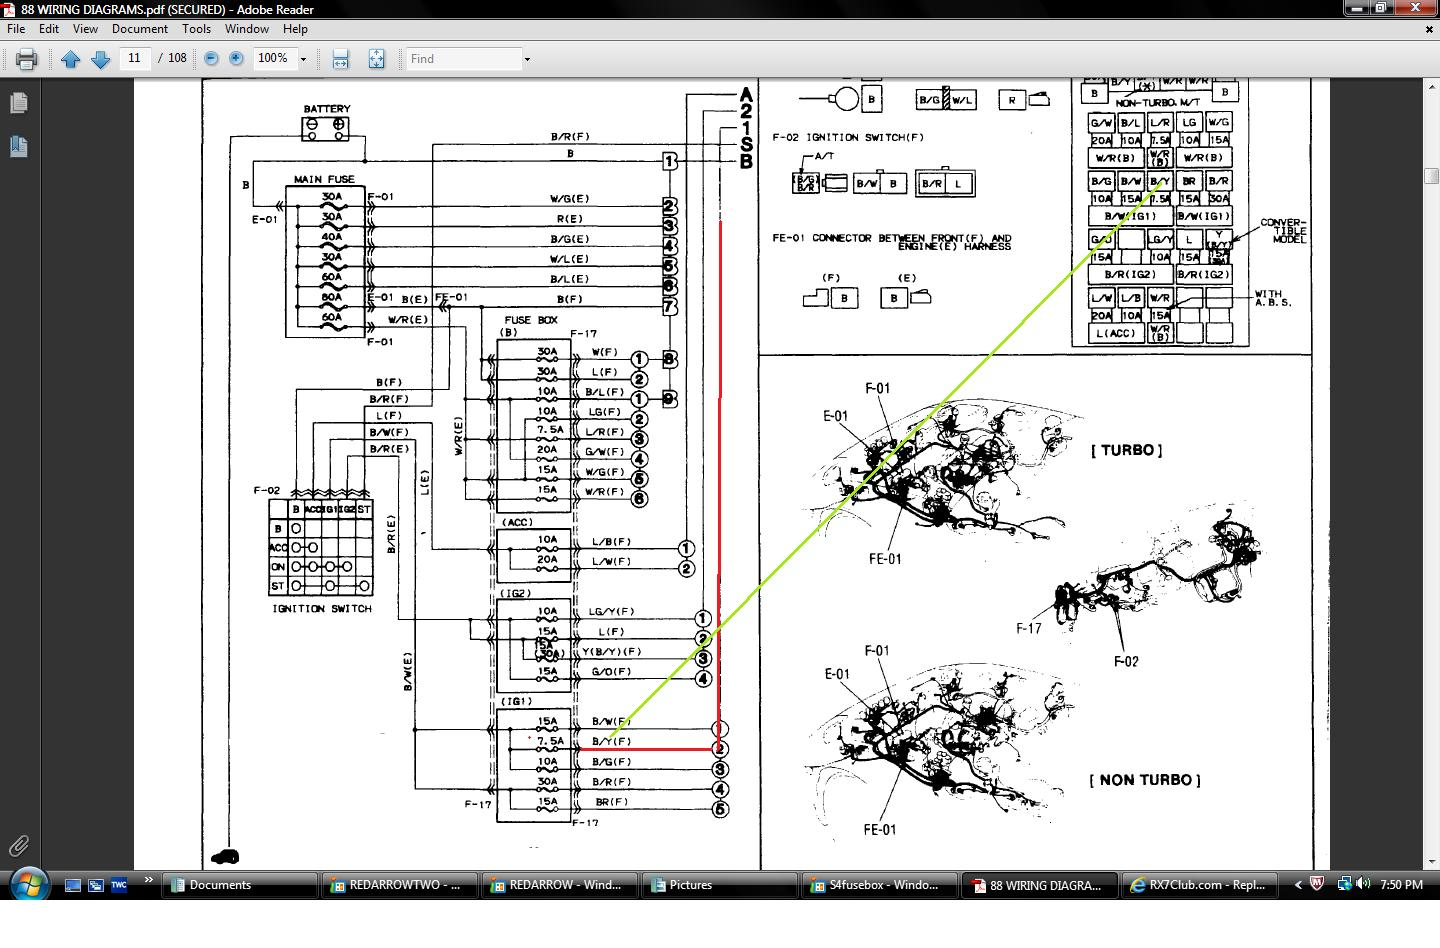 1986 mazda b2000 ignition wiring diagram viper atv winch 88 rx7 rx7club forum